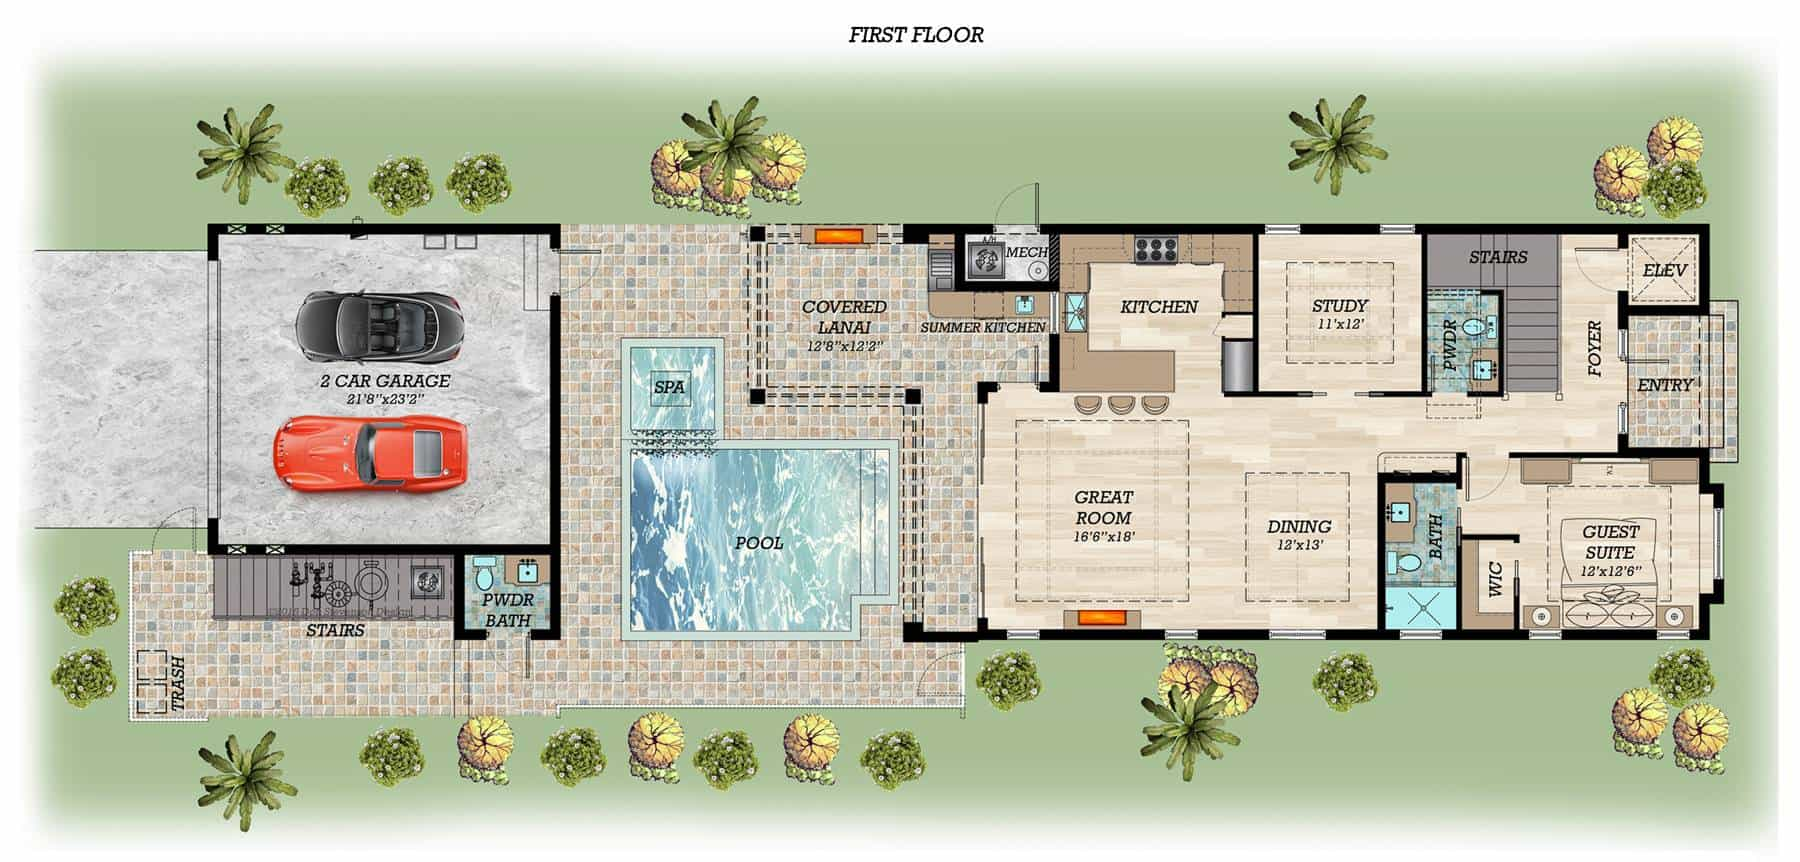 Main level floor plan of a 4-bedroom two-story Sea Scape beach style home with a guest suite, a study, kitchen, shared dining and great room, summer kitchen, and a separate 2-car garage after the pool with a powder room.